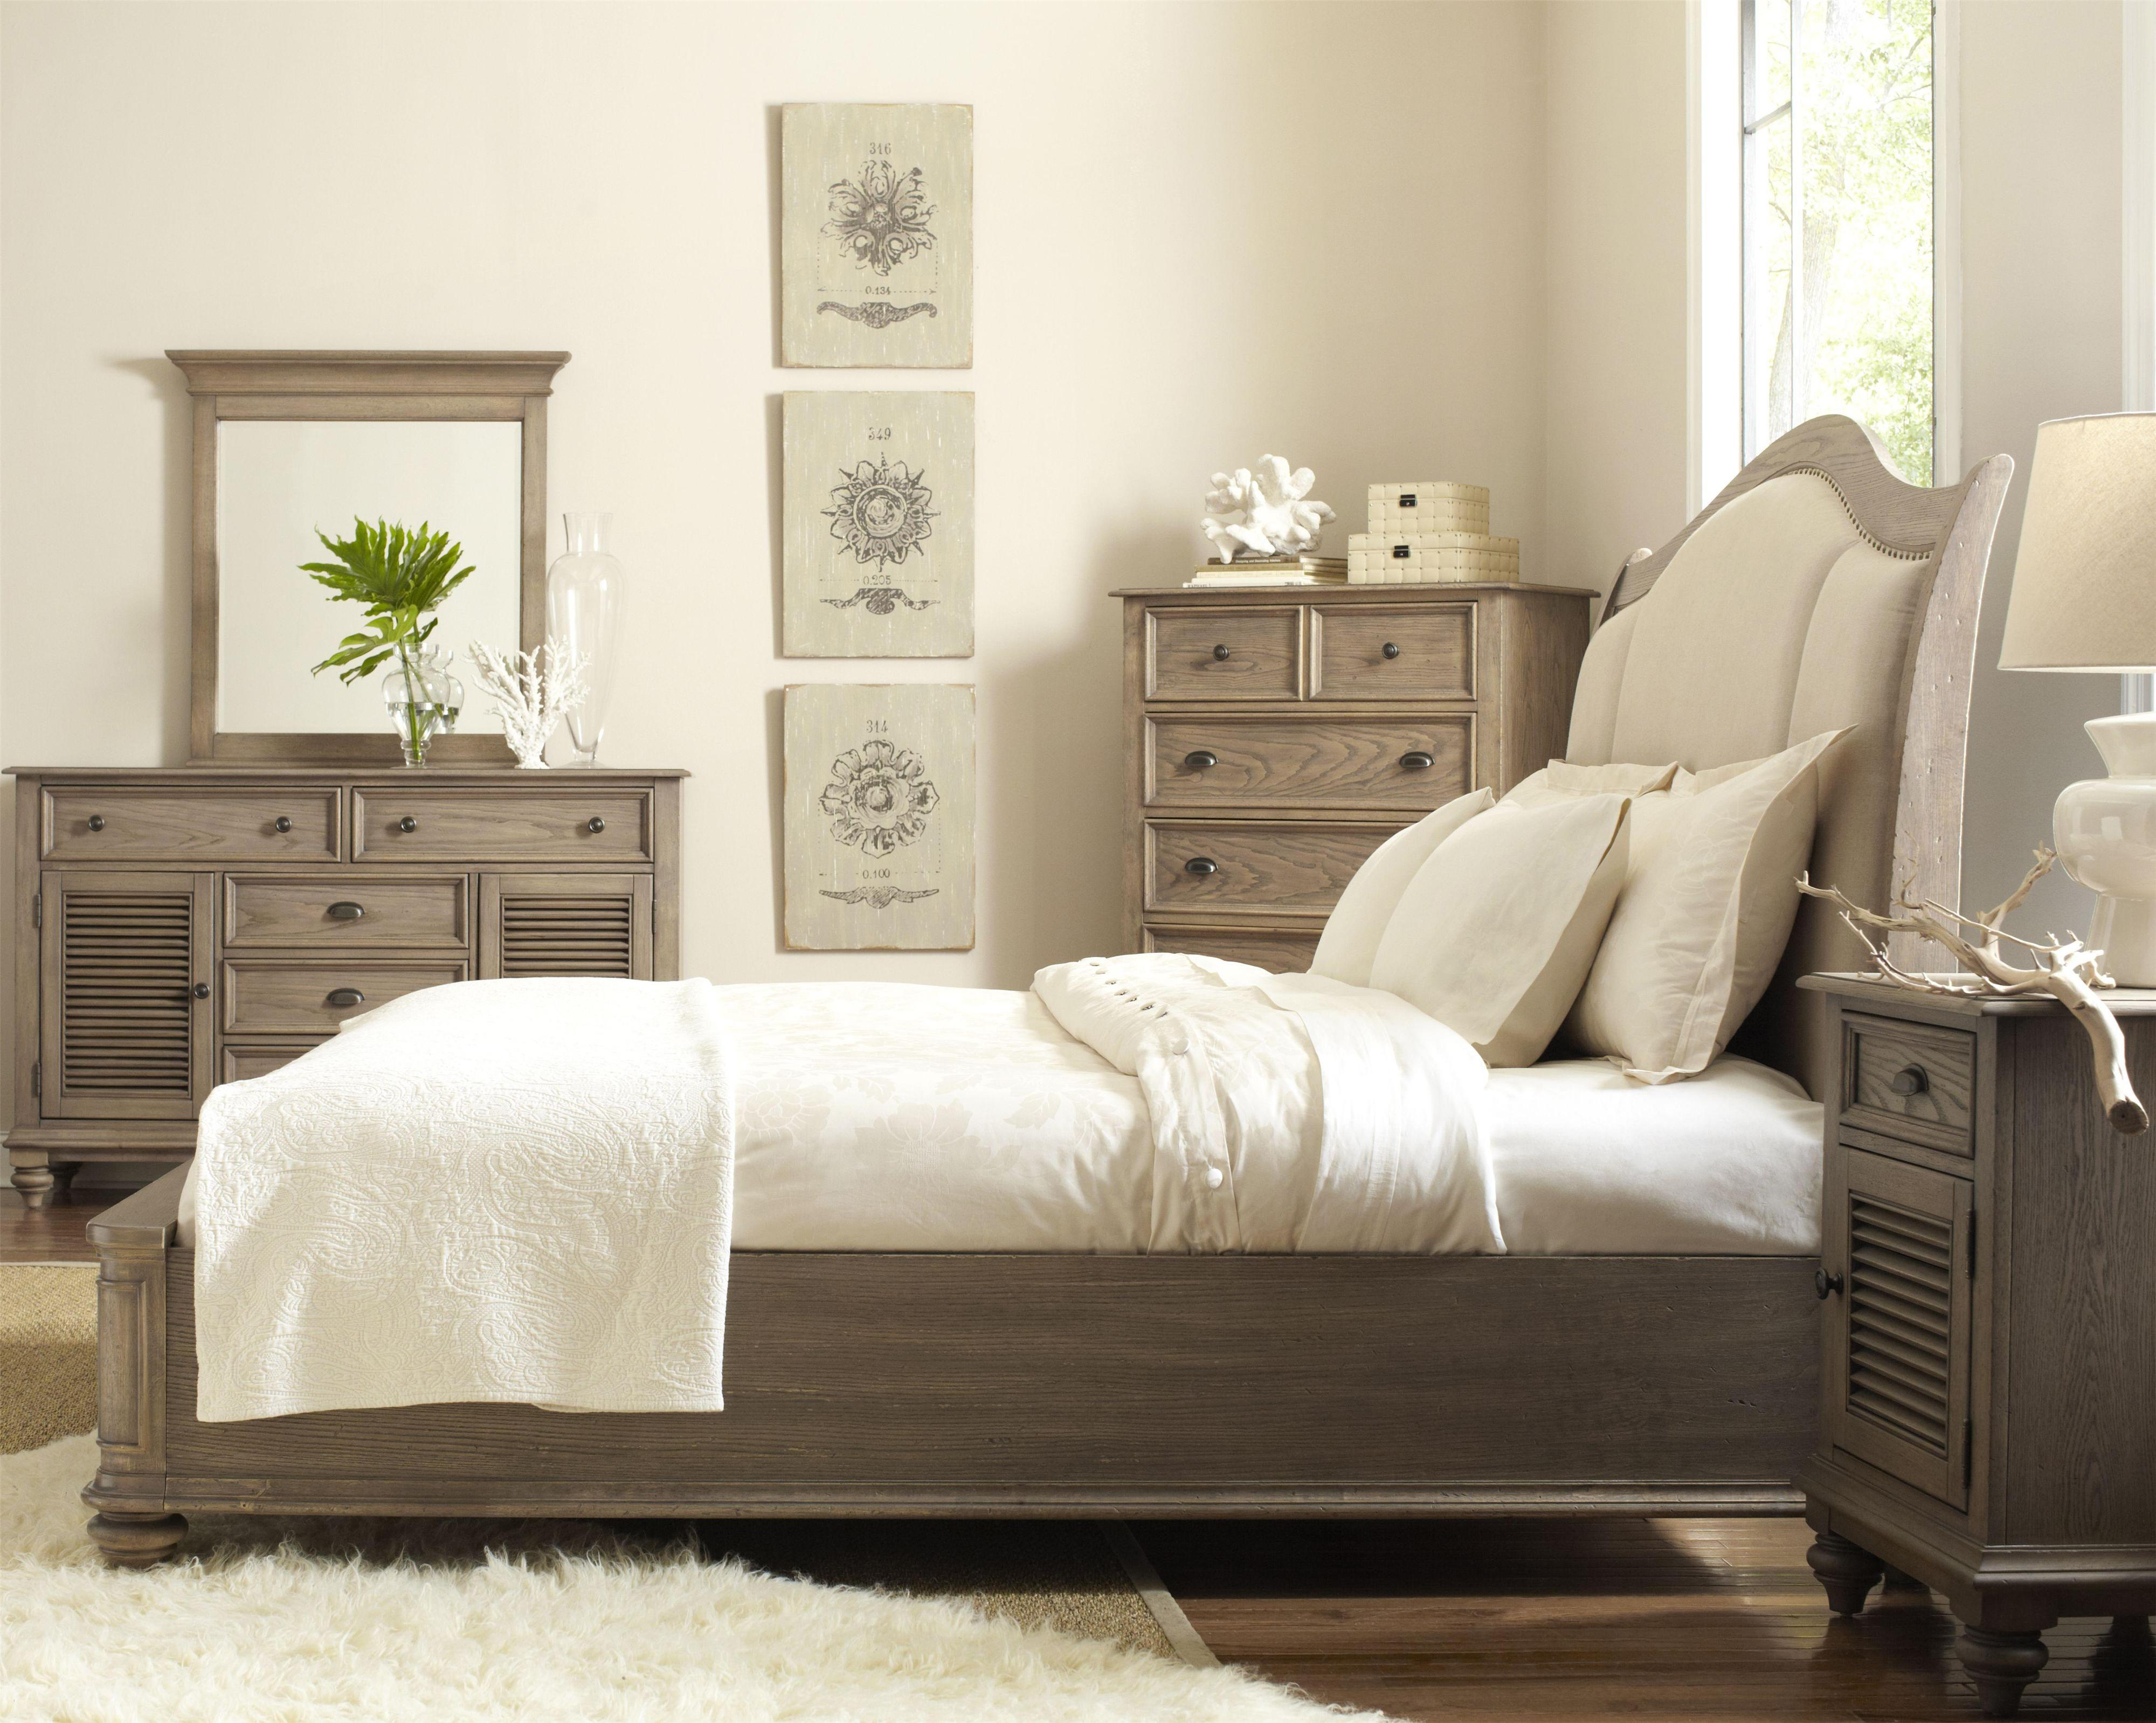 pics height which decorated ideas white with frame headboard bed broken linen cal upholstered king california vintage amazing design